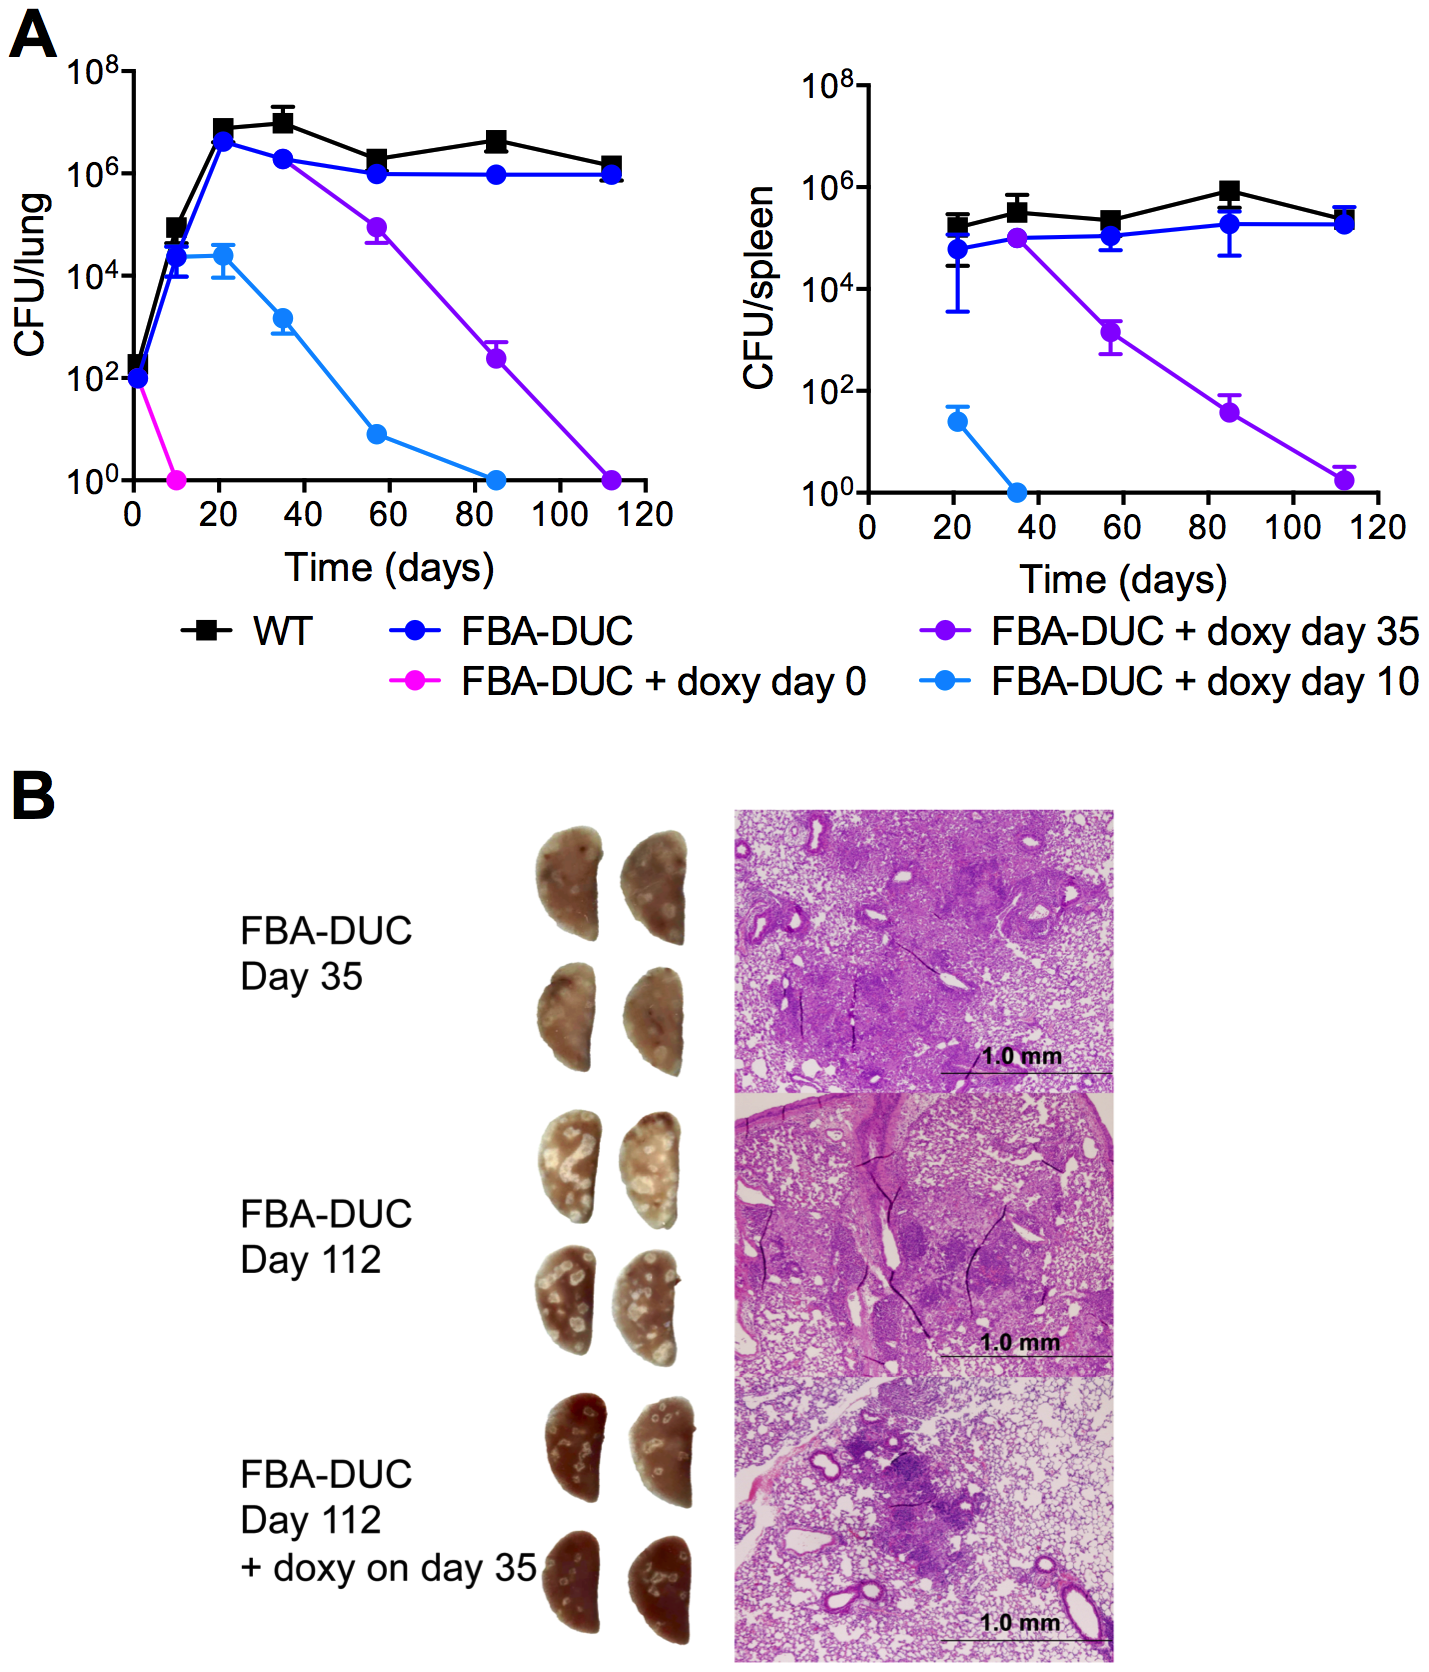 FBA is required for replication and persistence of <i>Mtb</i> in mice.